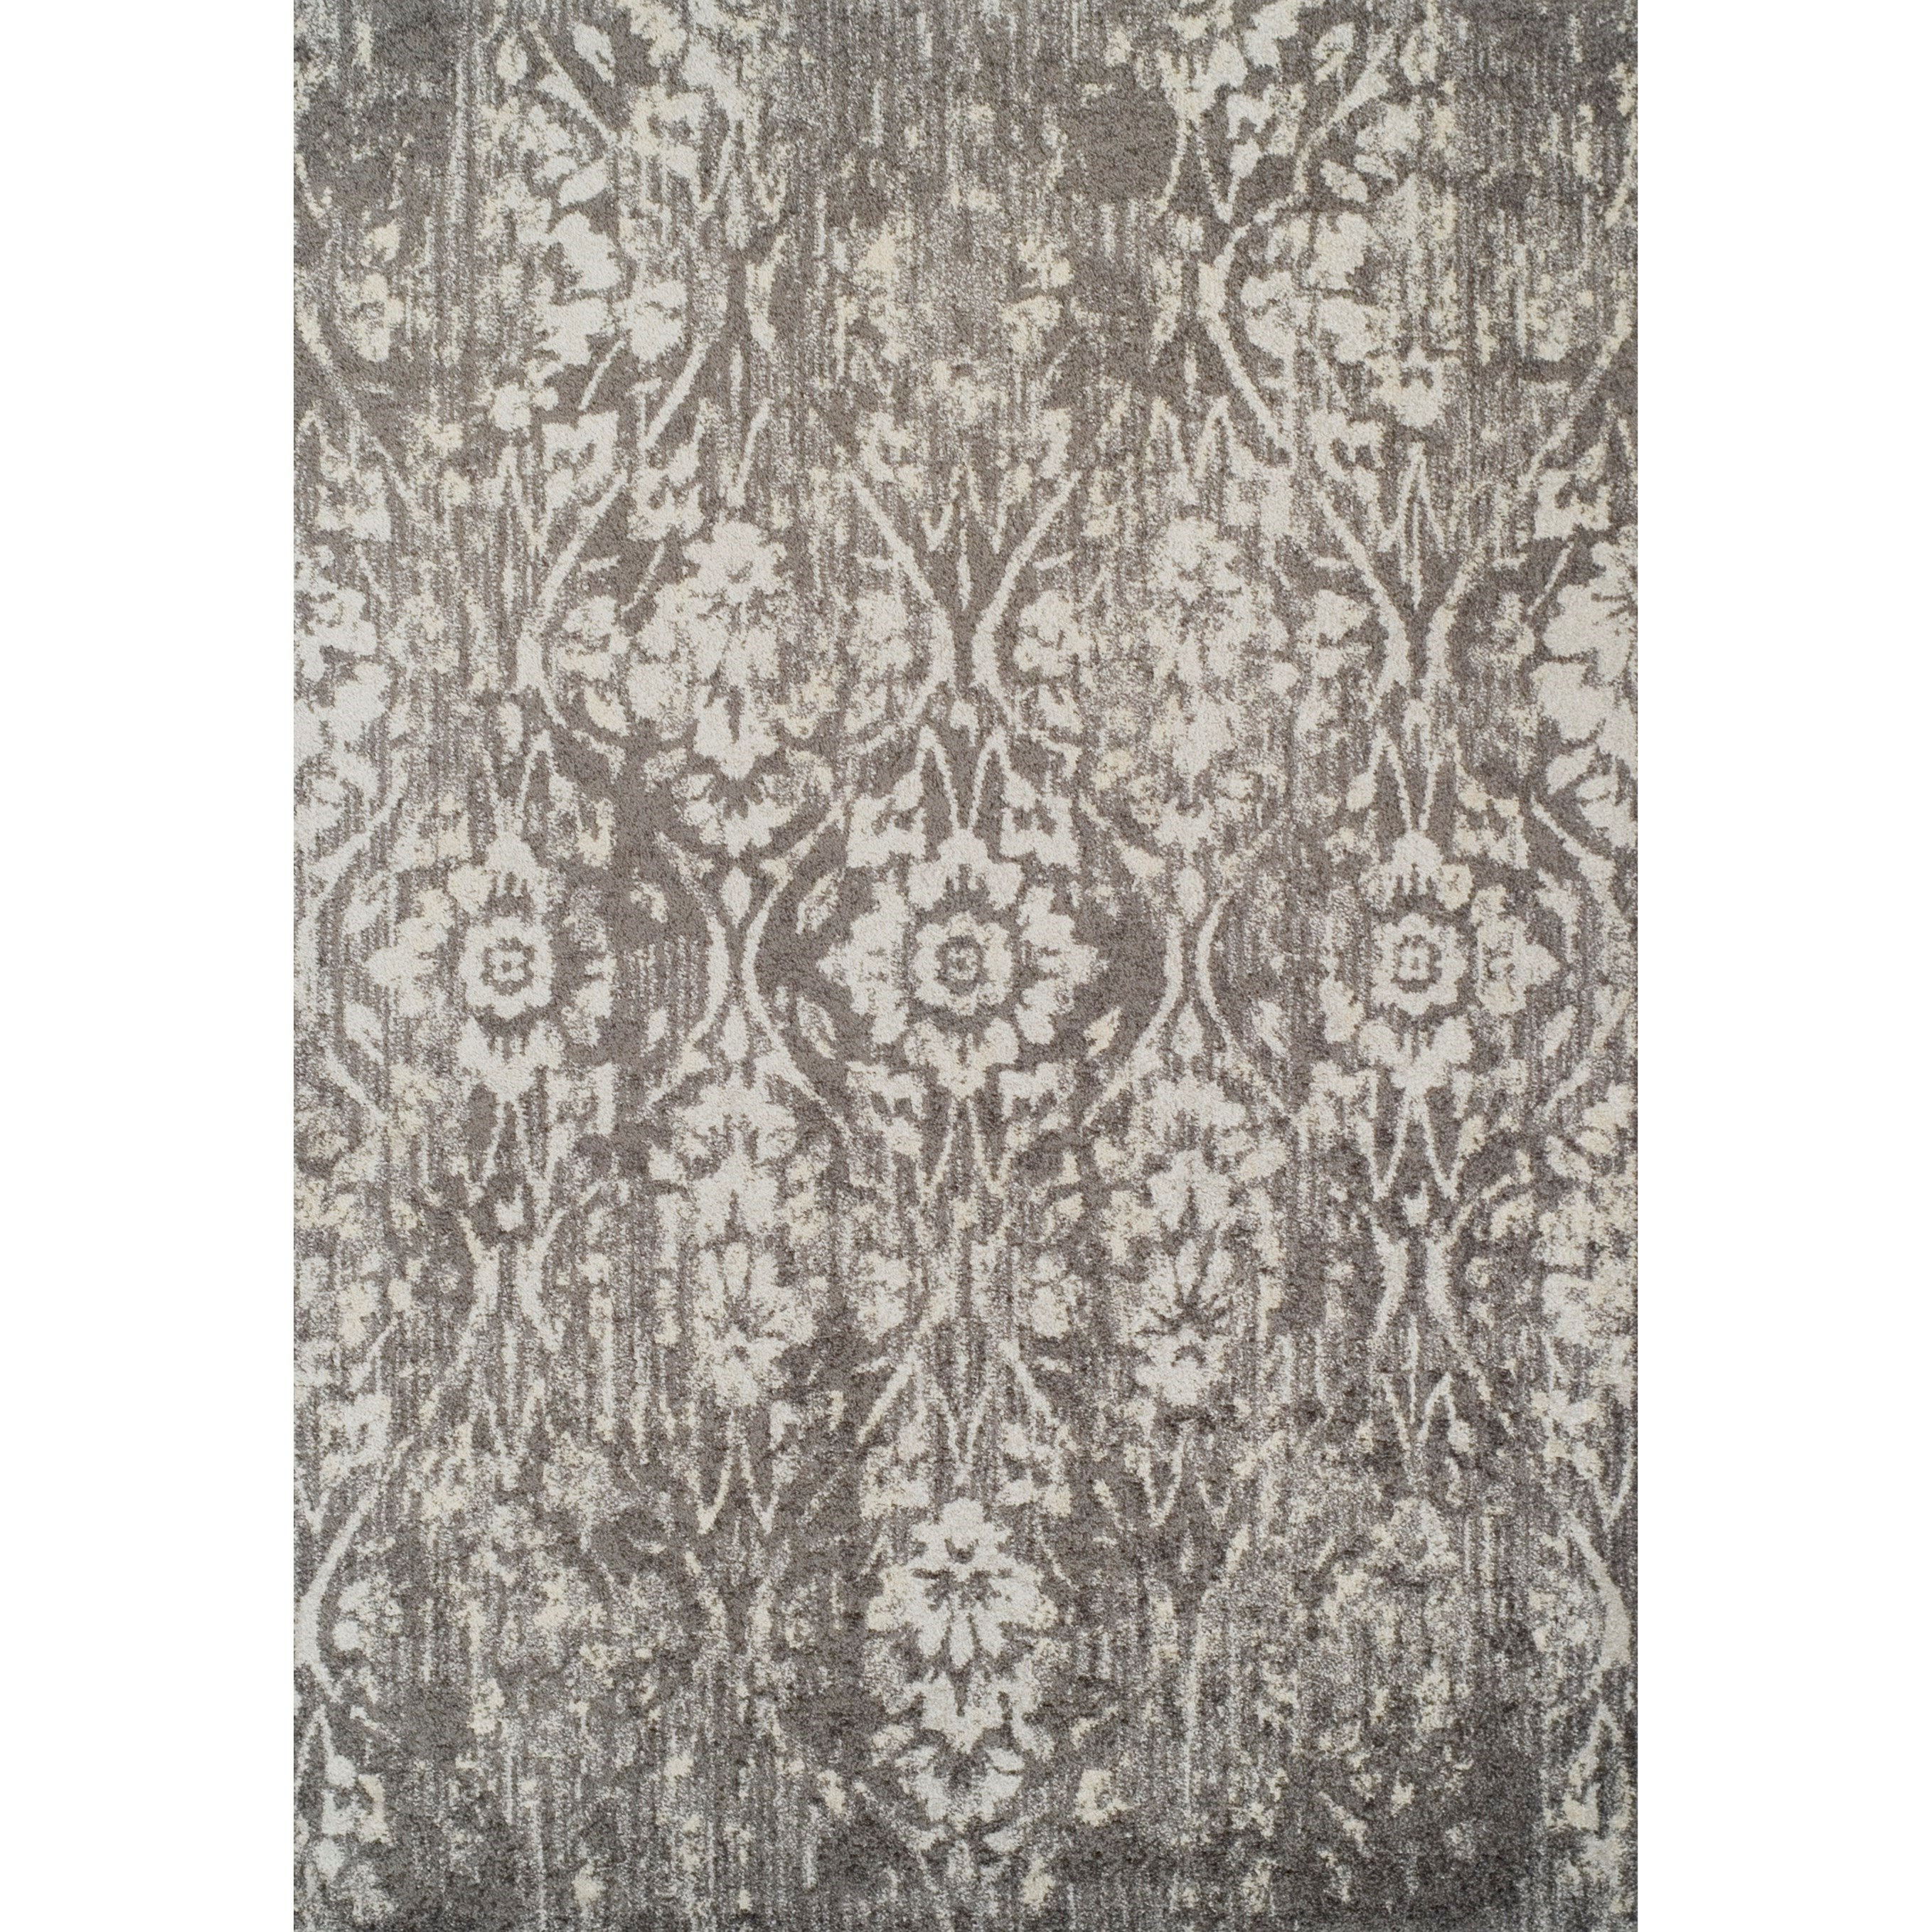 "Gala Steel 4'11""X7' Rug by Dalyn at Sadler's Home Furnishings"